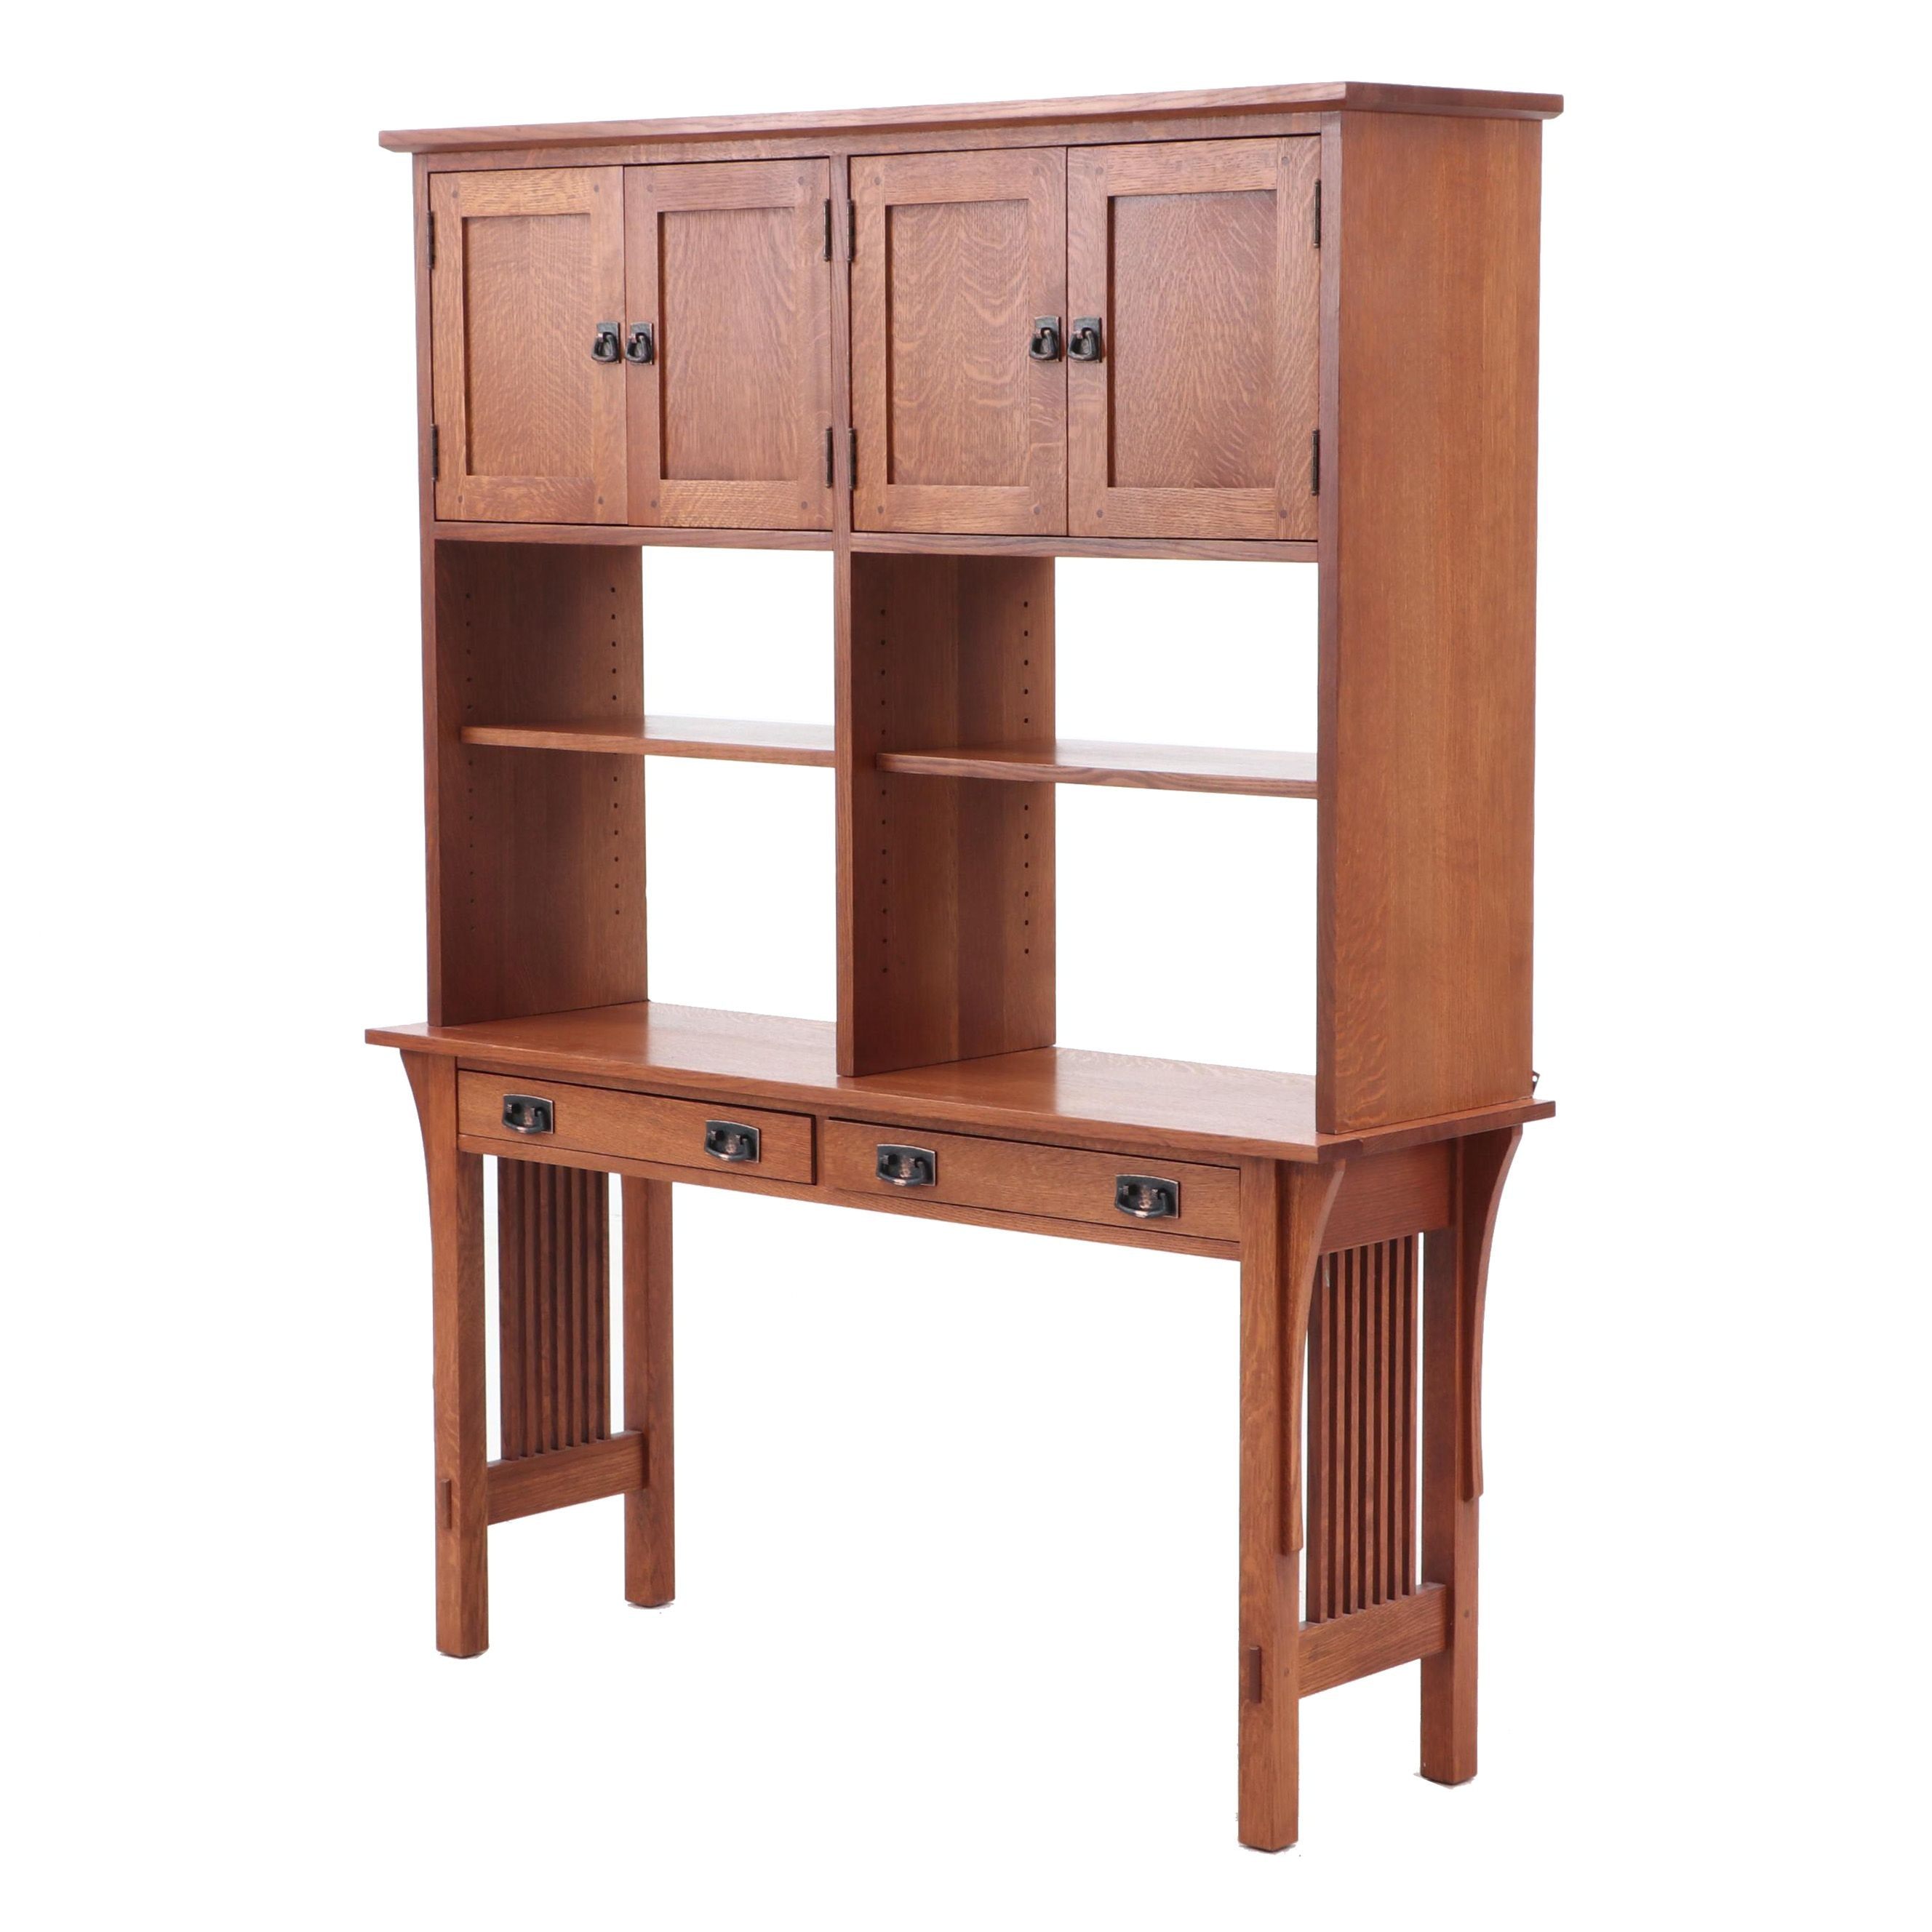 Stickley Oak Writing Desk with Bookshelves, Late 20th Century